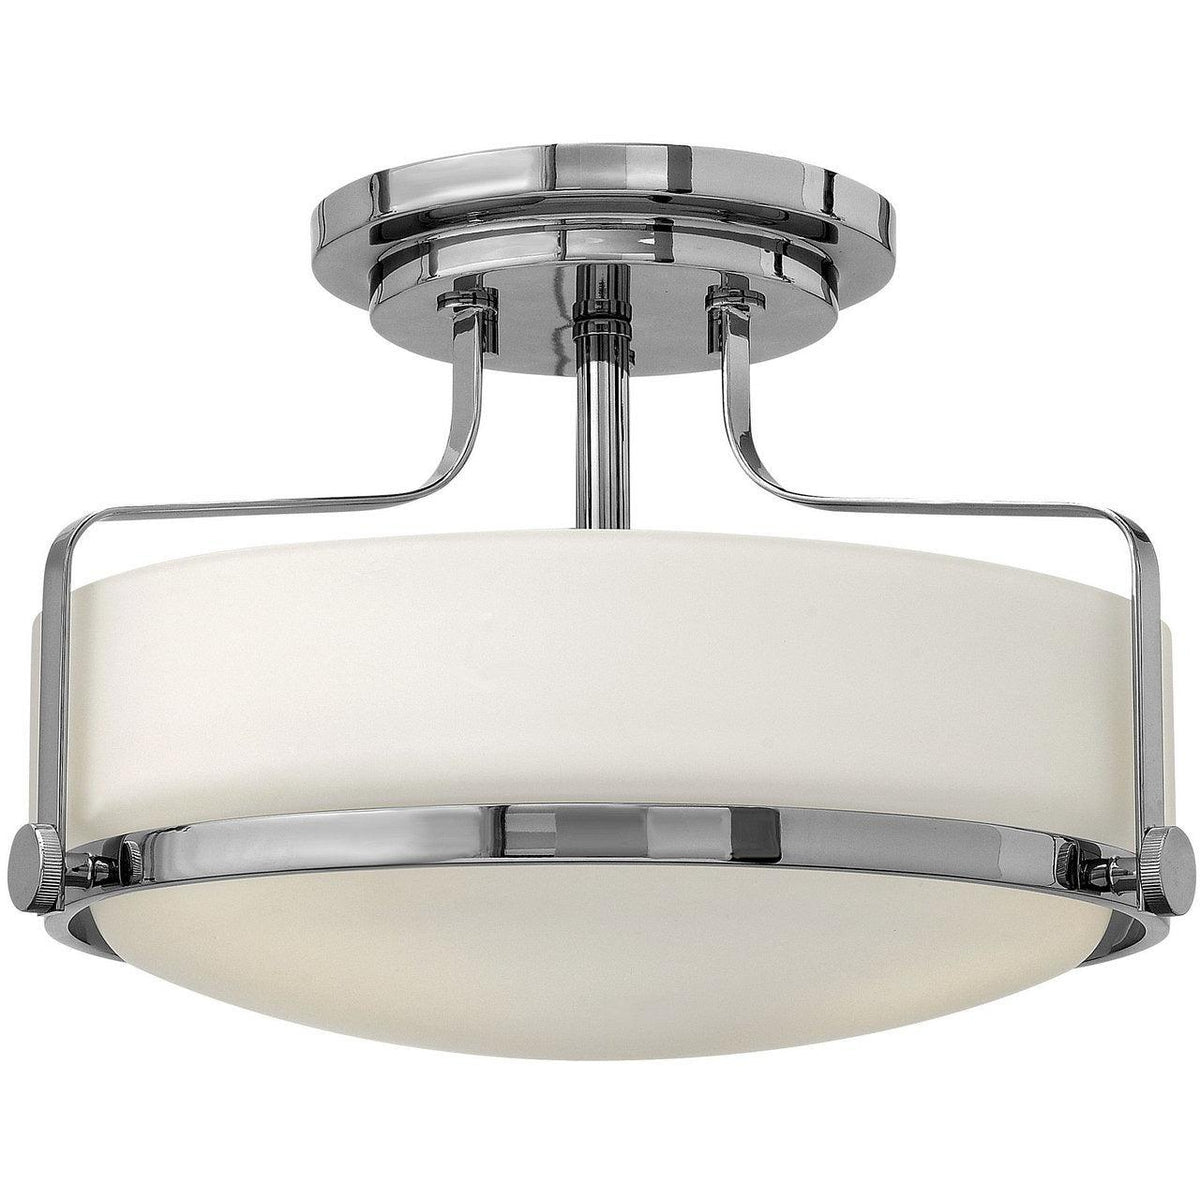 Hinkley Canada - 3641CM-LED - LED Semi-Flush Mount - Harper - Chrome